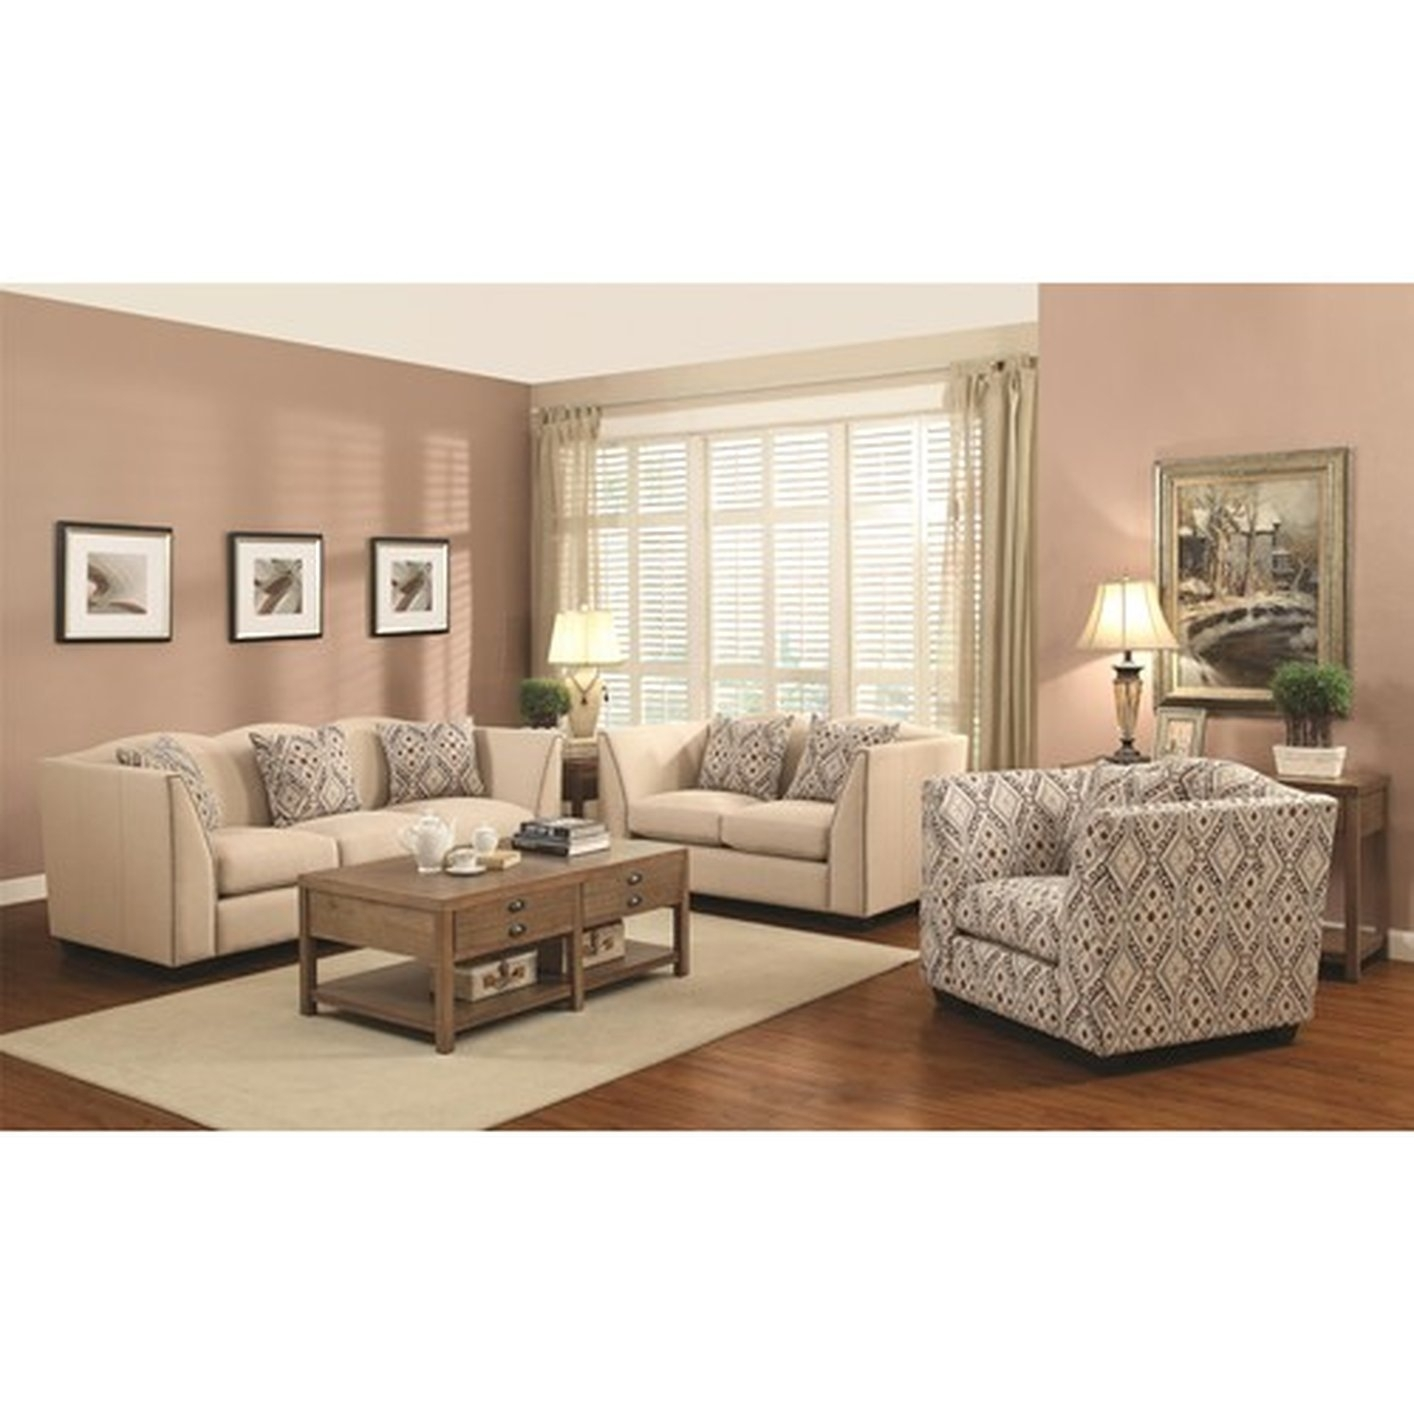 Avery Taupe 86 Sofa And Accent Chair Set American Signature Height 4 Inside Sofa And Accent Chair Sets (View 8 of 10)